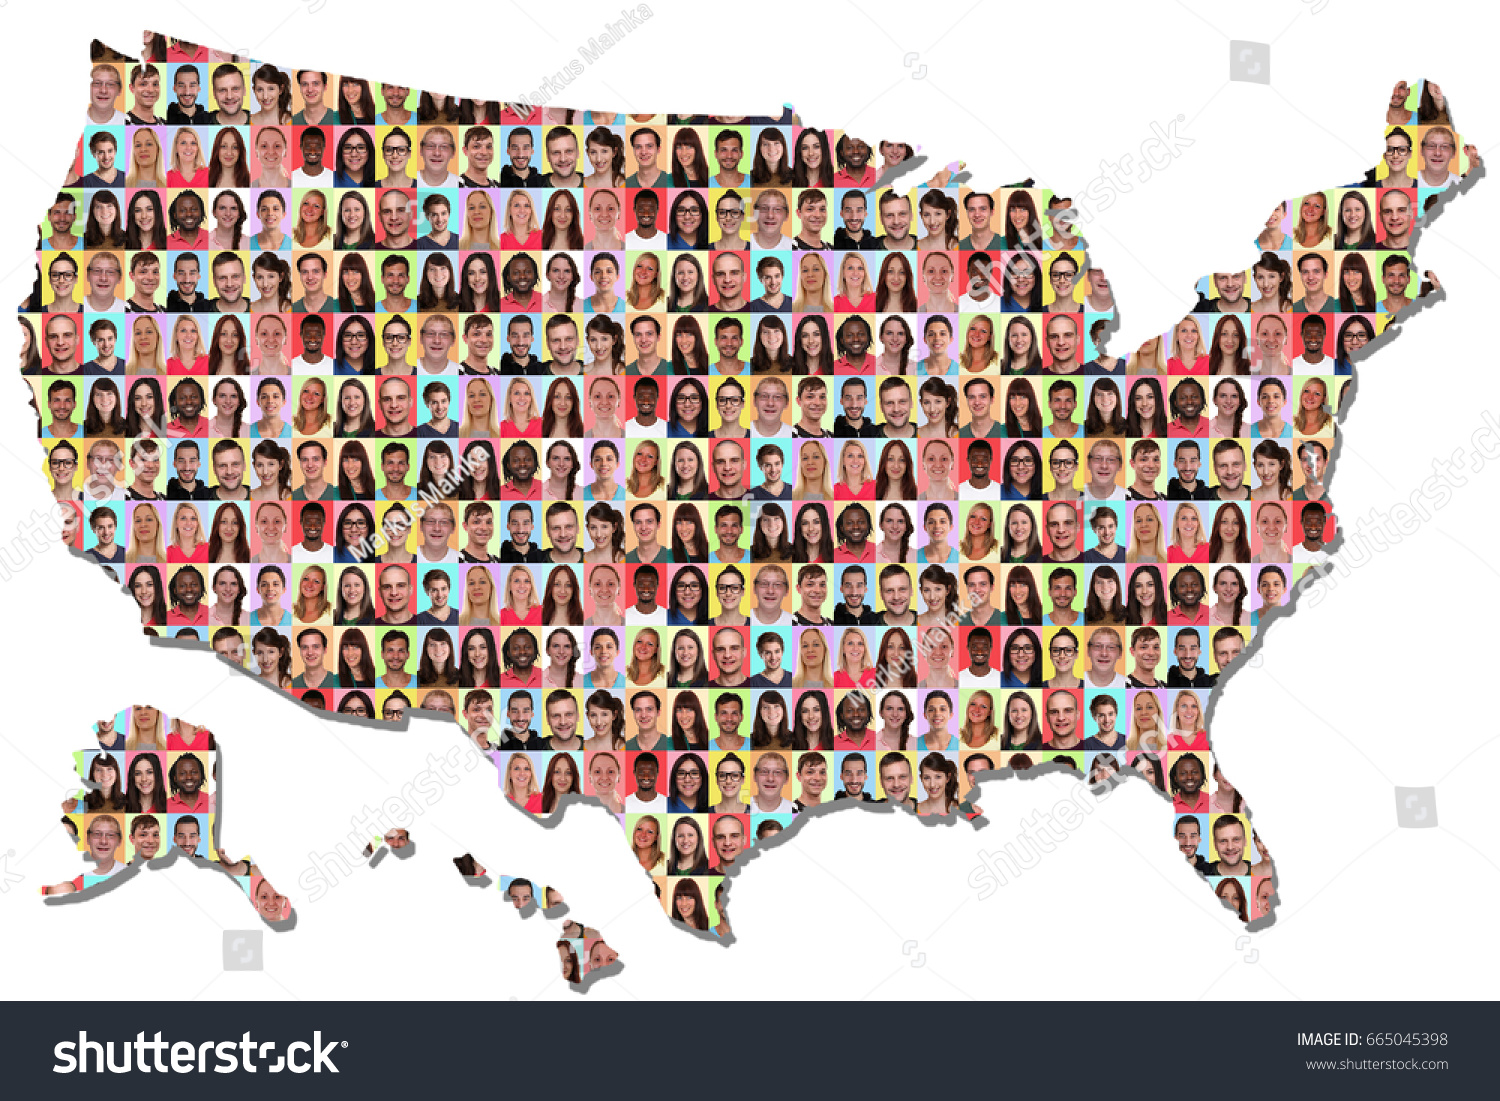 Usa Us America United States Map Stock Photo (Edit Now ... United States Map Group on east coast map, great lakes map, nevada map, the us map, florida map, caribbean map, the world map, mississippi map, blank map, us state map, 13 colonies map, arkansas map, africa map, missouri map, europe map, canada map, mexico map, full size us map, tennessee map, texas map,